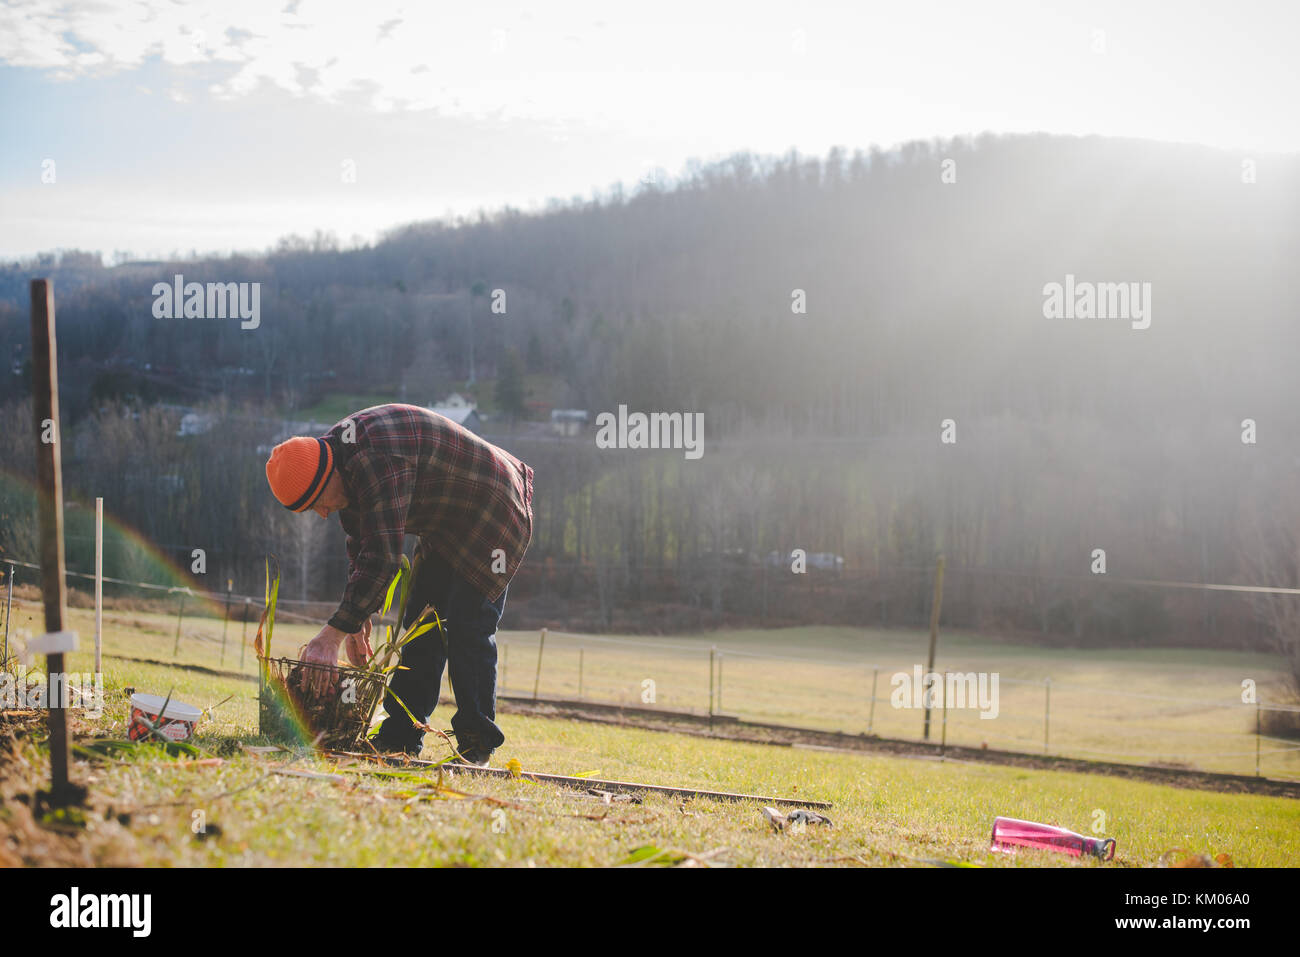 A man bent over a basket of flower bulbs. - Stock Image